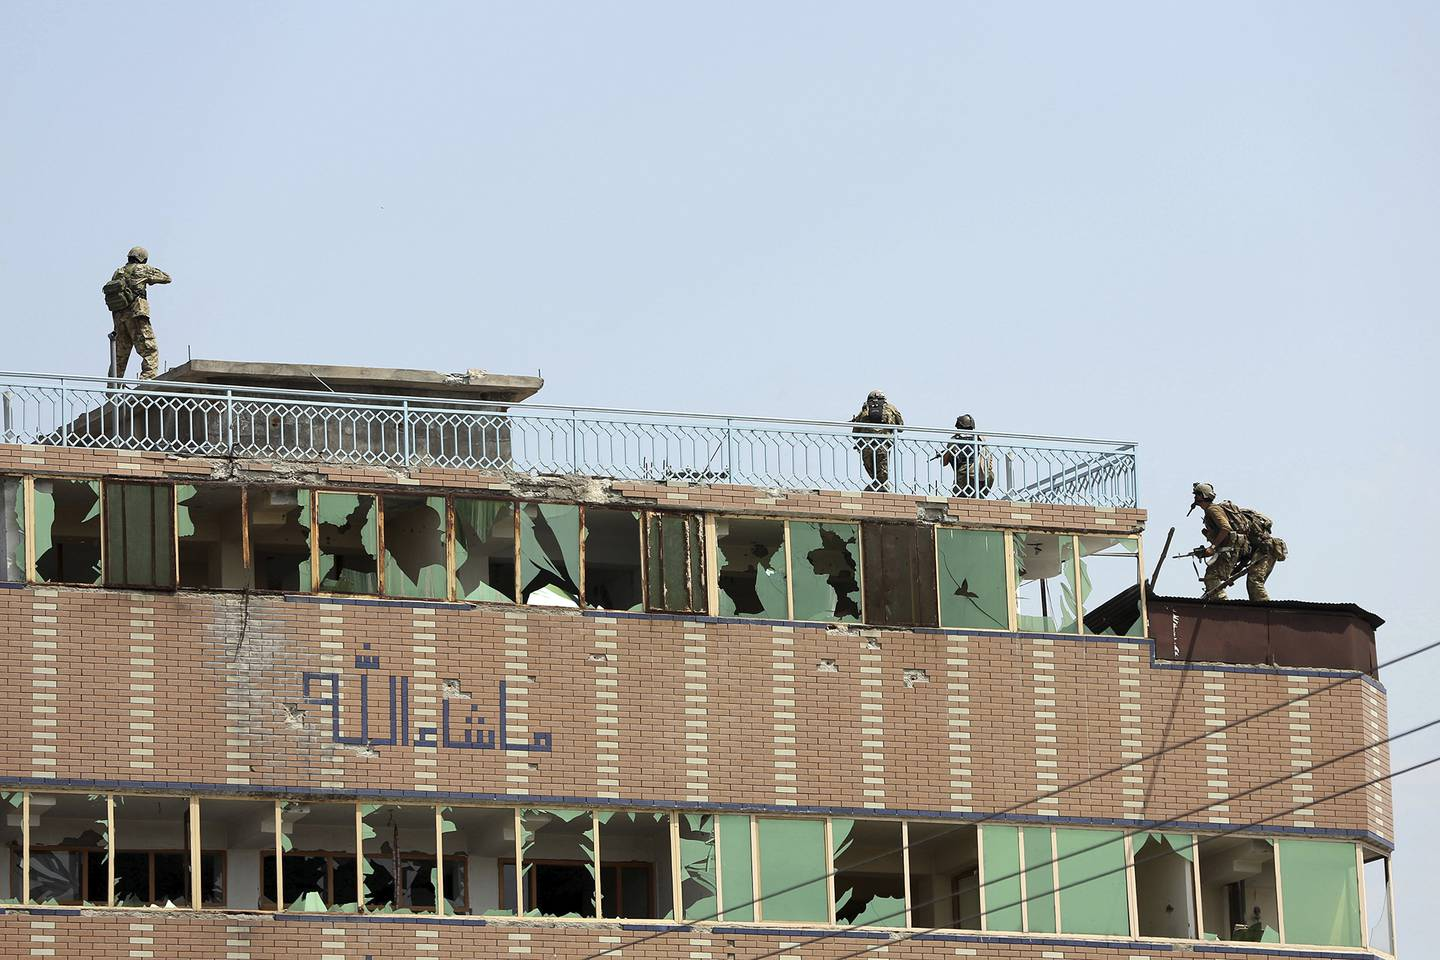 Afghan security personnel take position on the top of a building where insurgents were hiding, in the city of Jalalabad, east of Kabul, Afghanistan, Monday, Aug. 3, 2020.